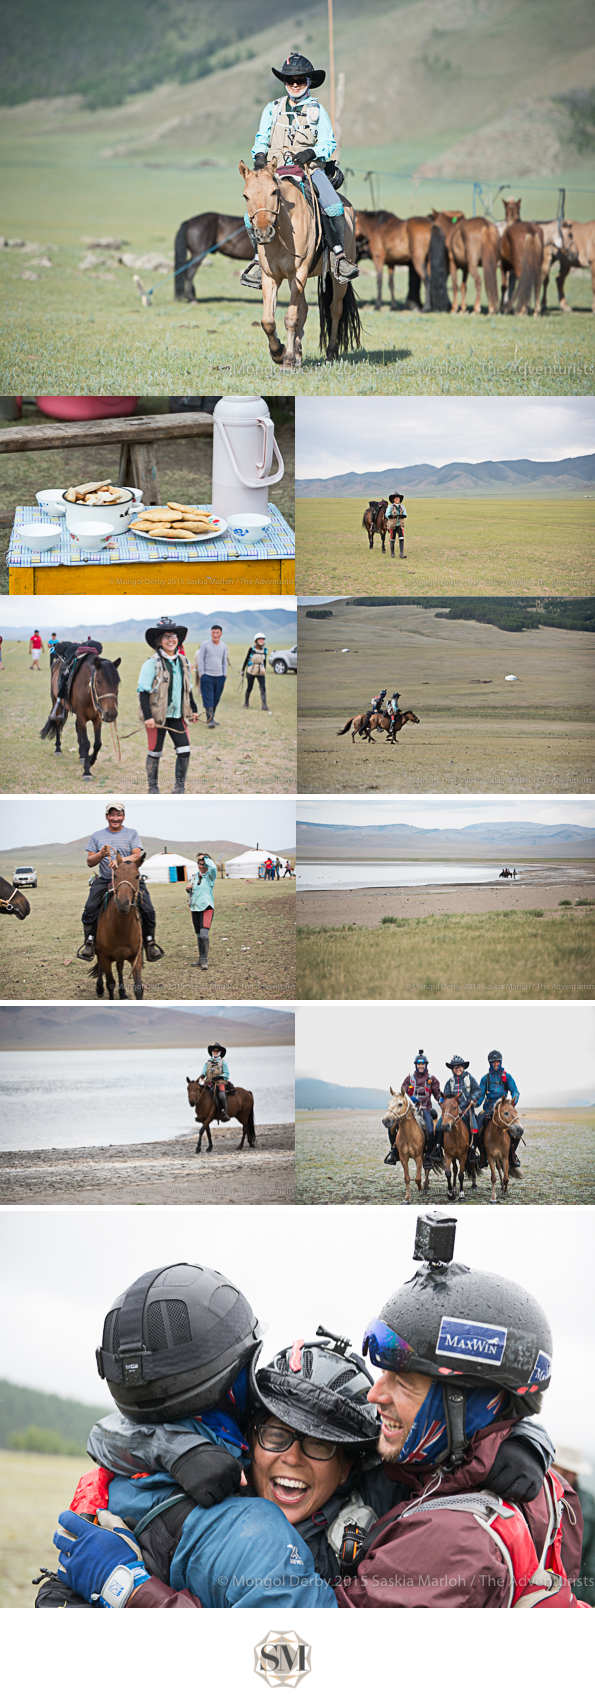 Michelle Tanaka, place 3 of the Mongol Derby 2015 photos by Saskia Marloh